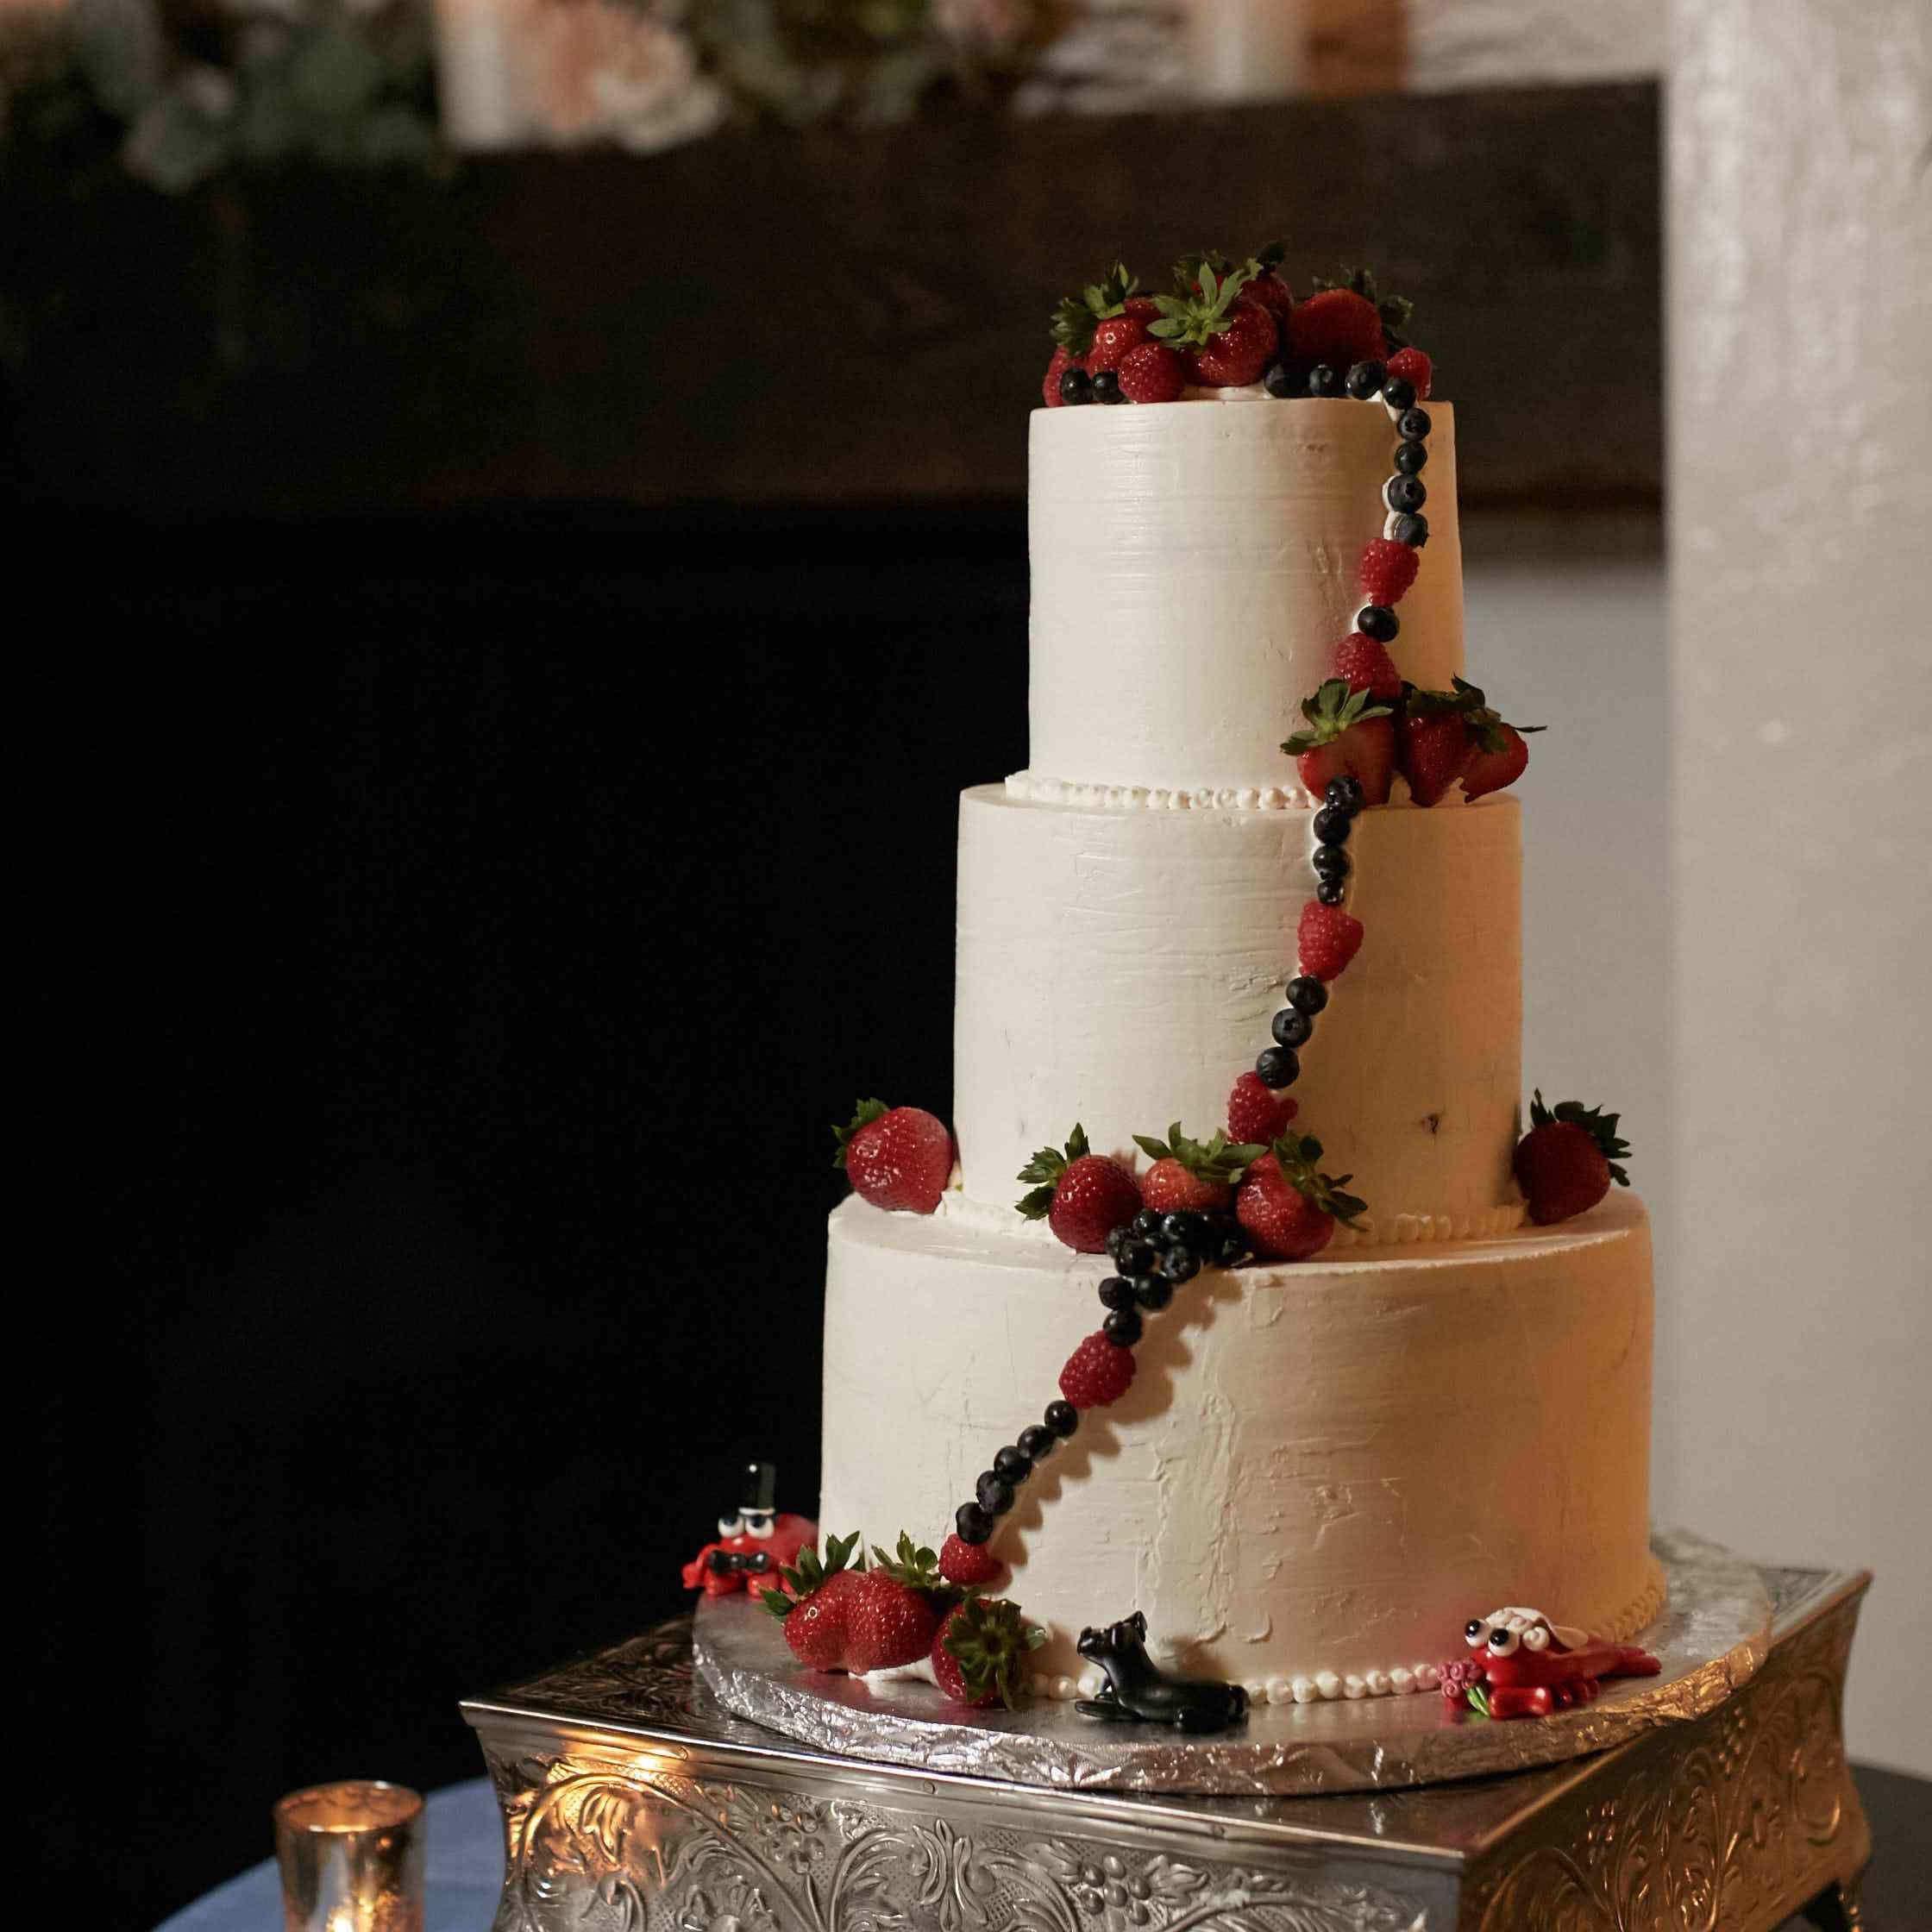 <p>White Wedding Cake with Berries</p><br><br>